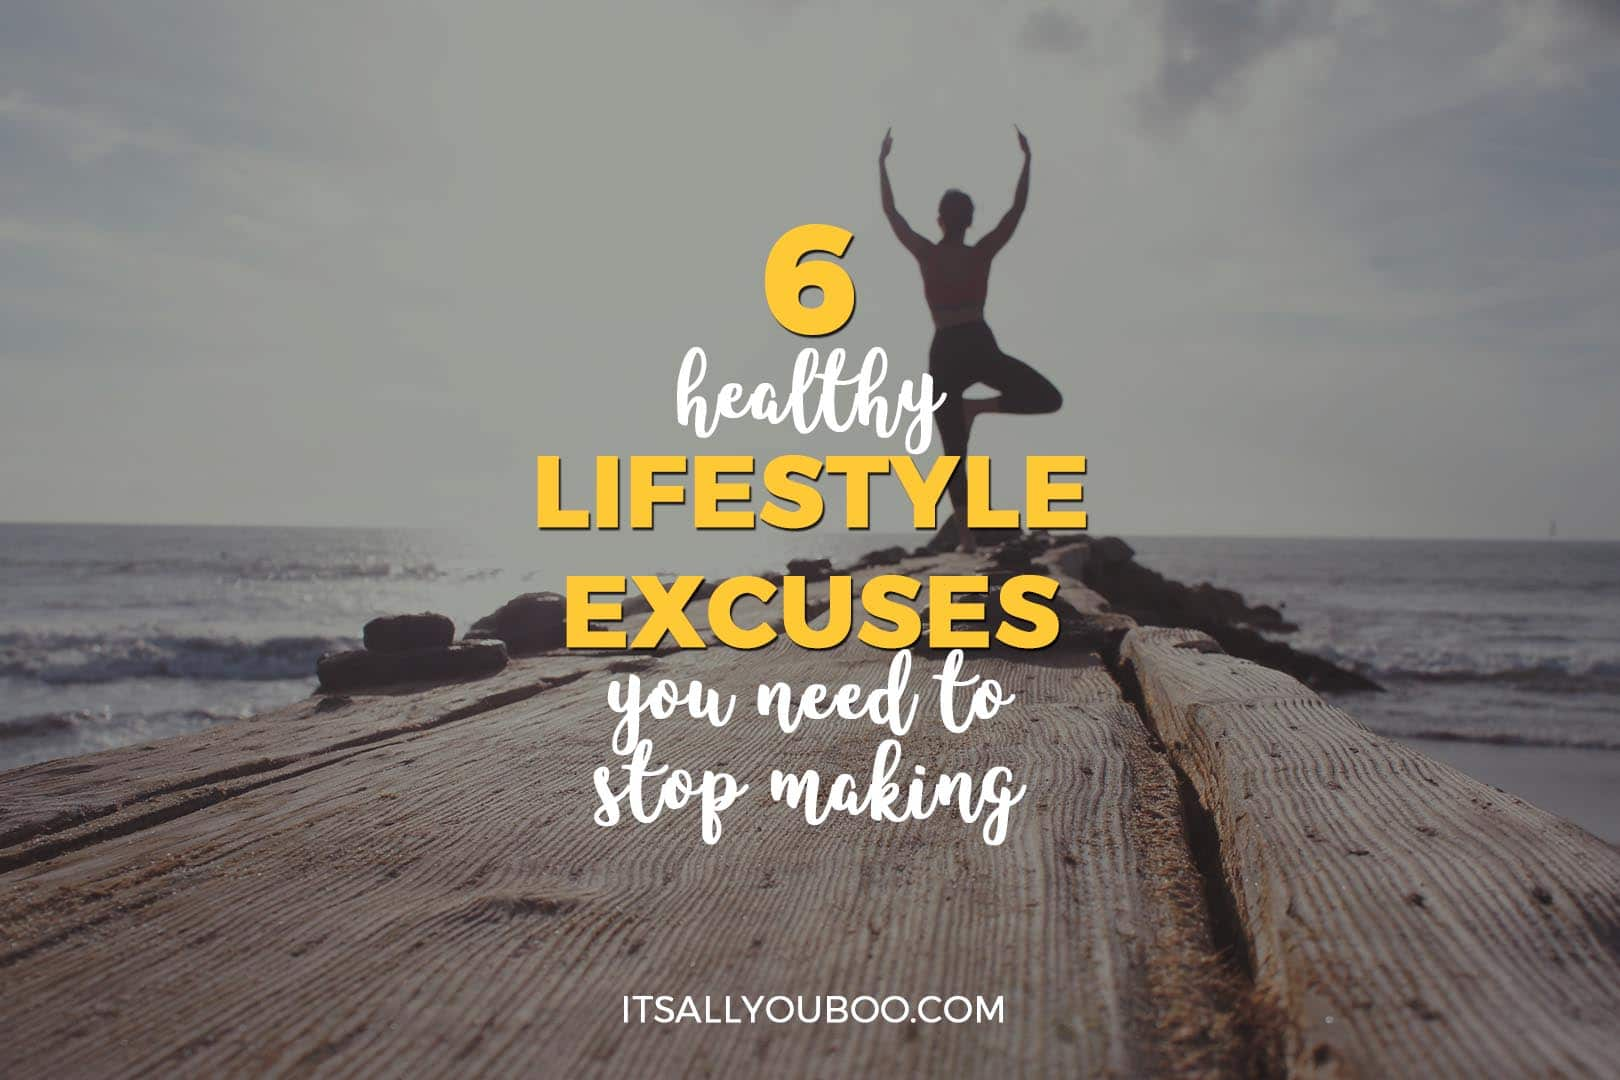 6 Healthy Lifestyle Excuses You Need to Stop Making